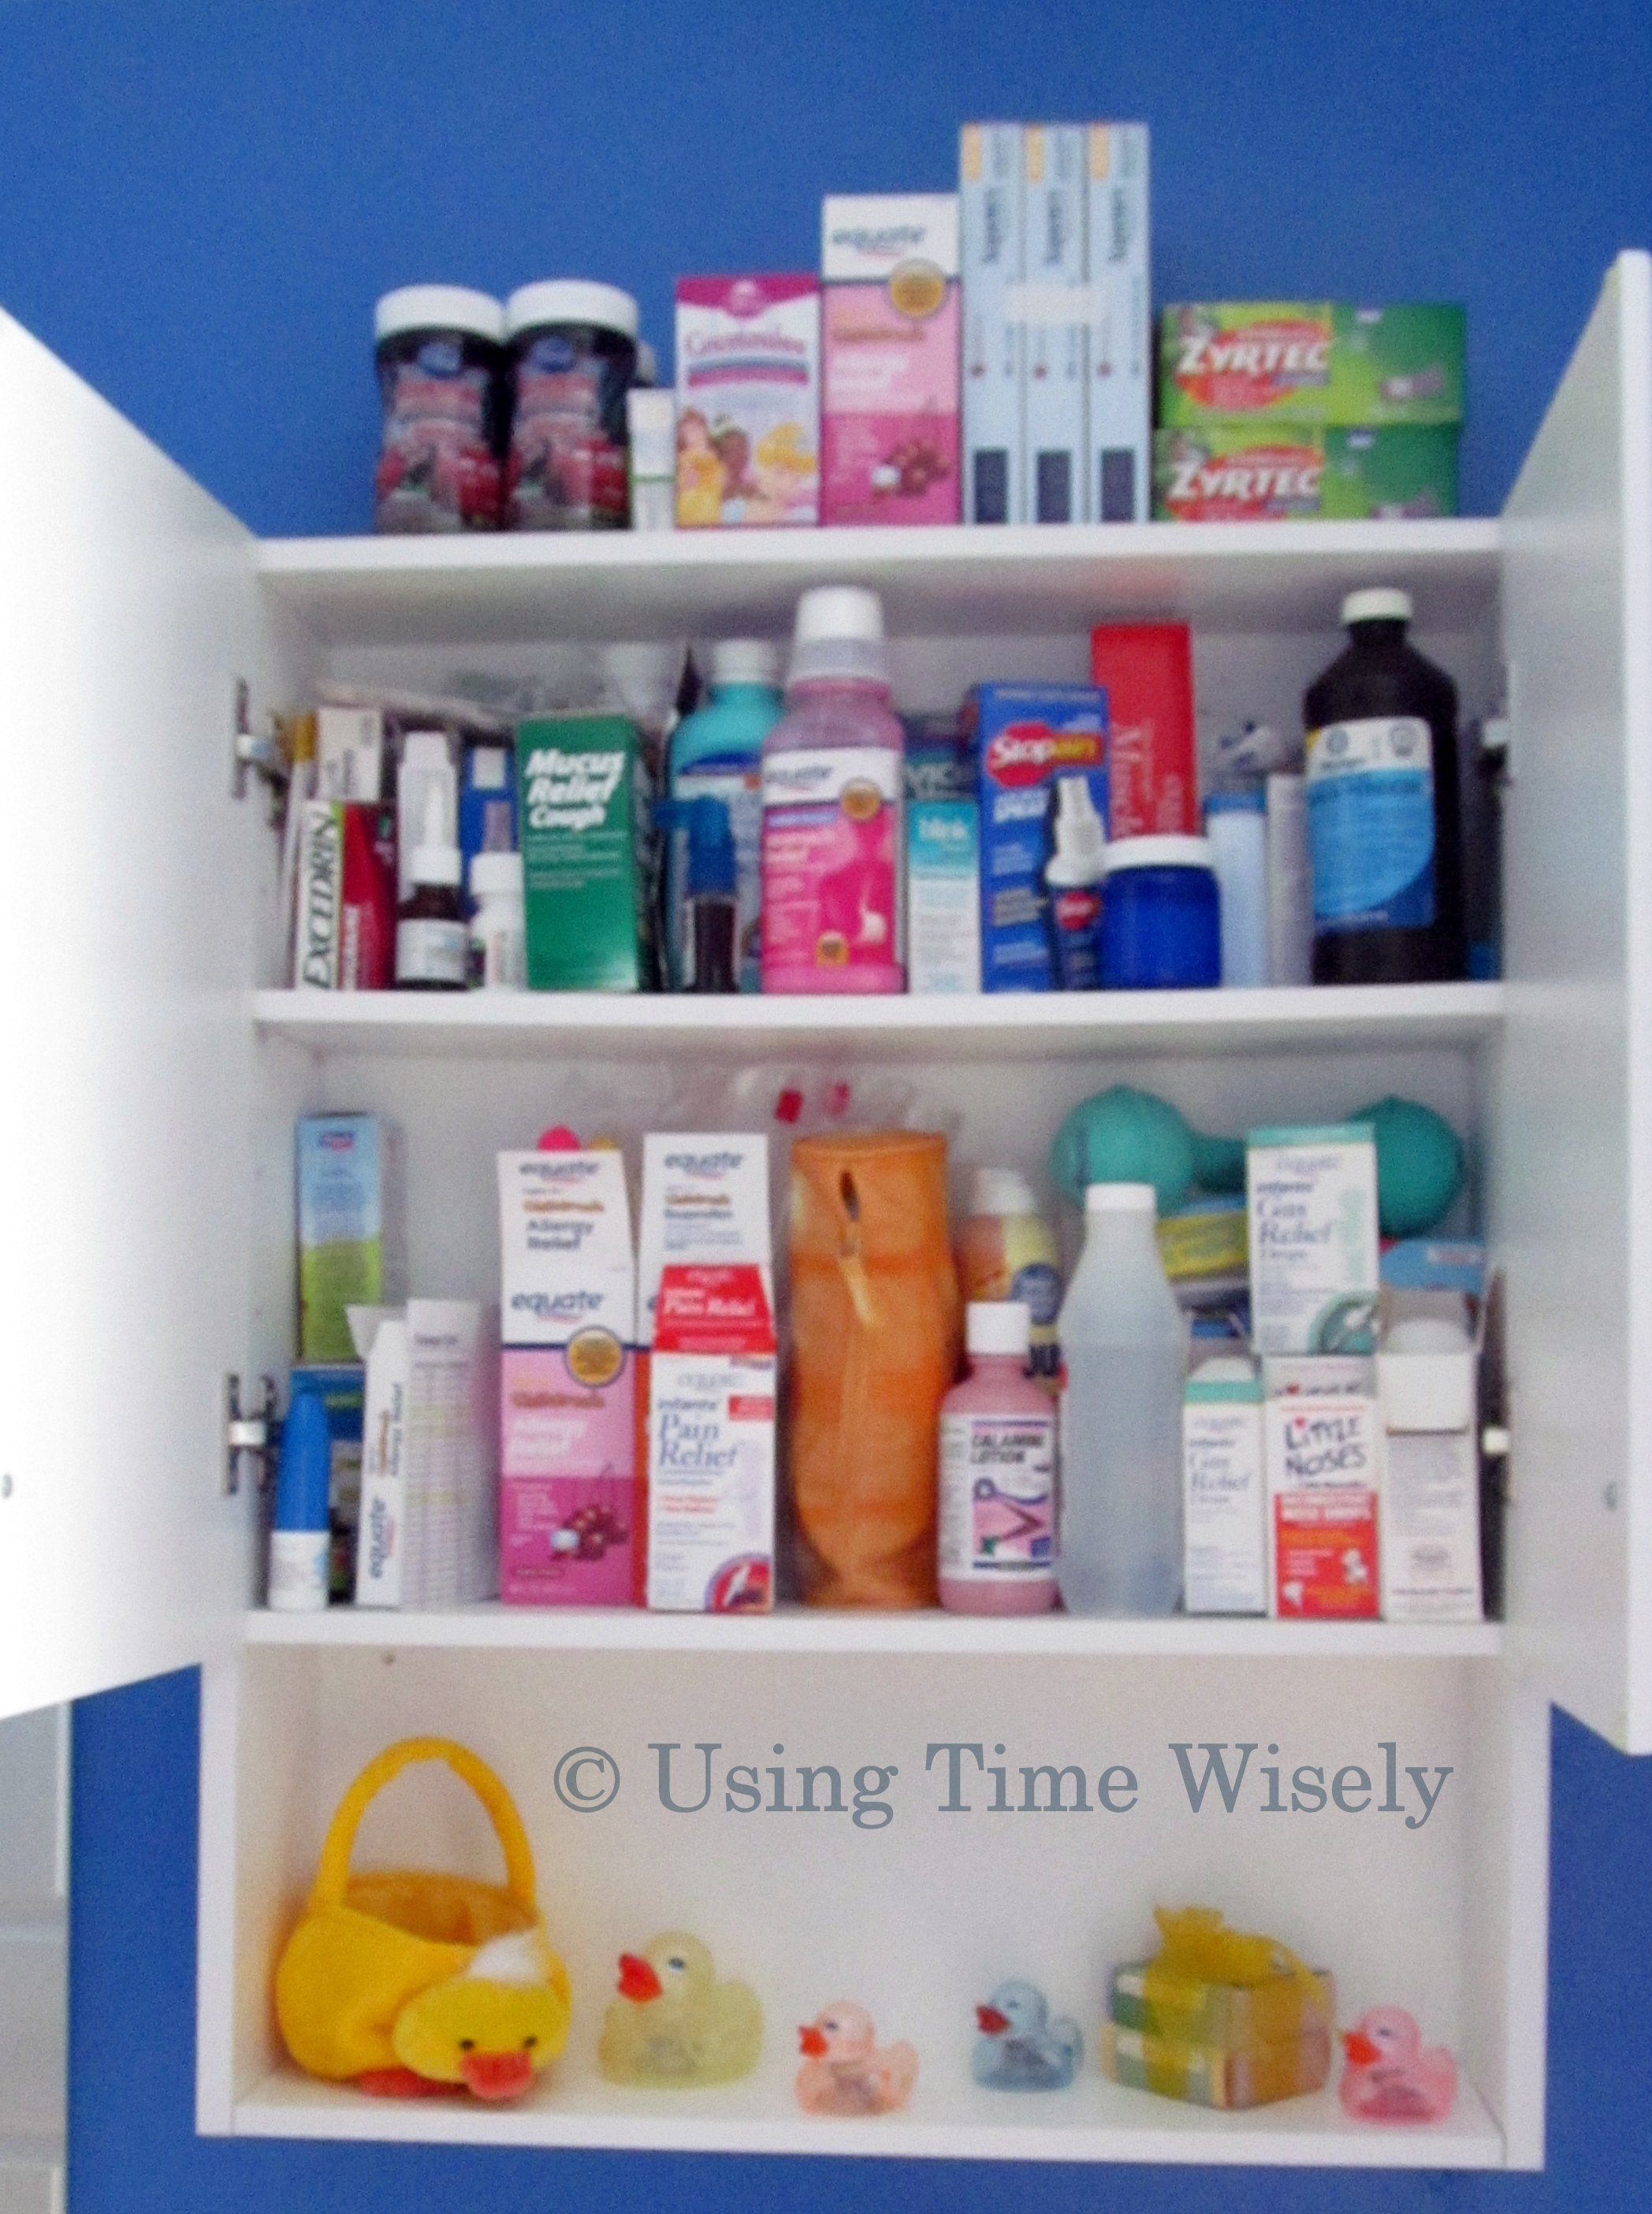 Full Medicine Cabinet Www Pixshark Com Images Galleries With A Bite